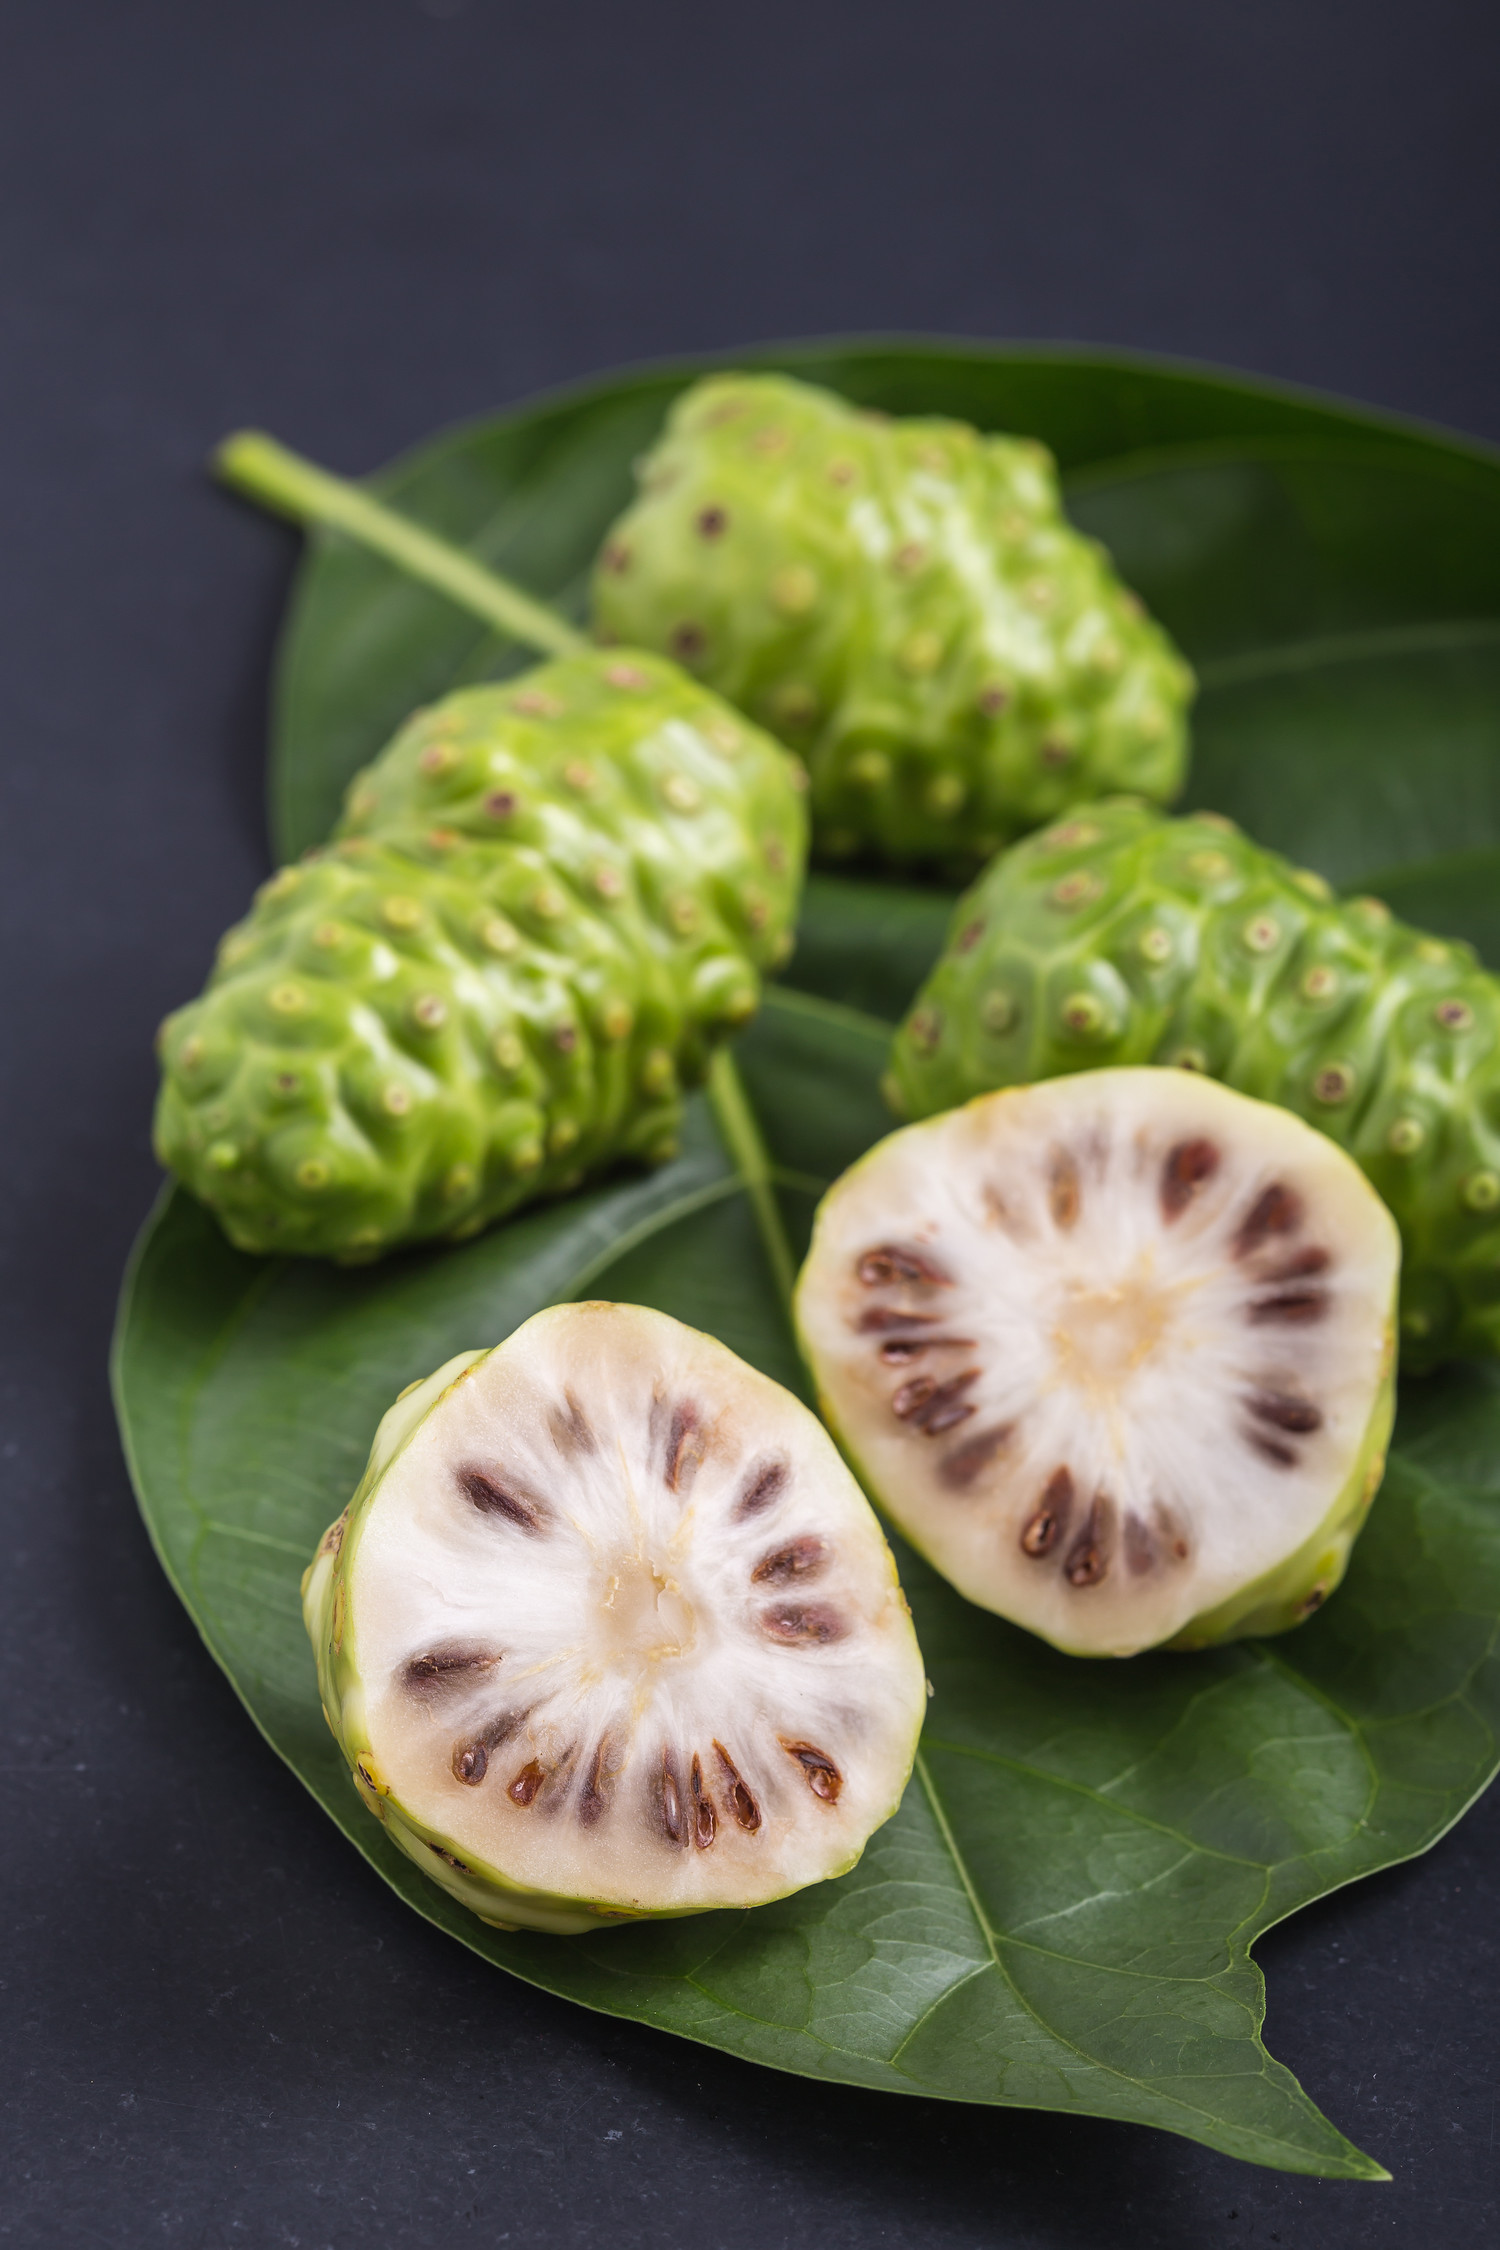 Noni is a fruit in Costa Rica and other Asian countries which smells like cheese.